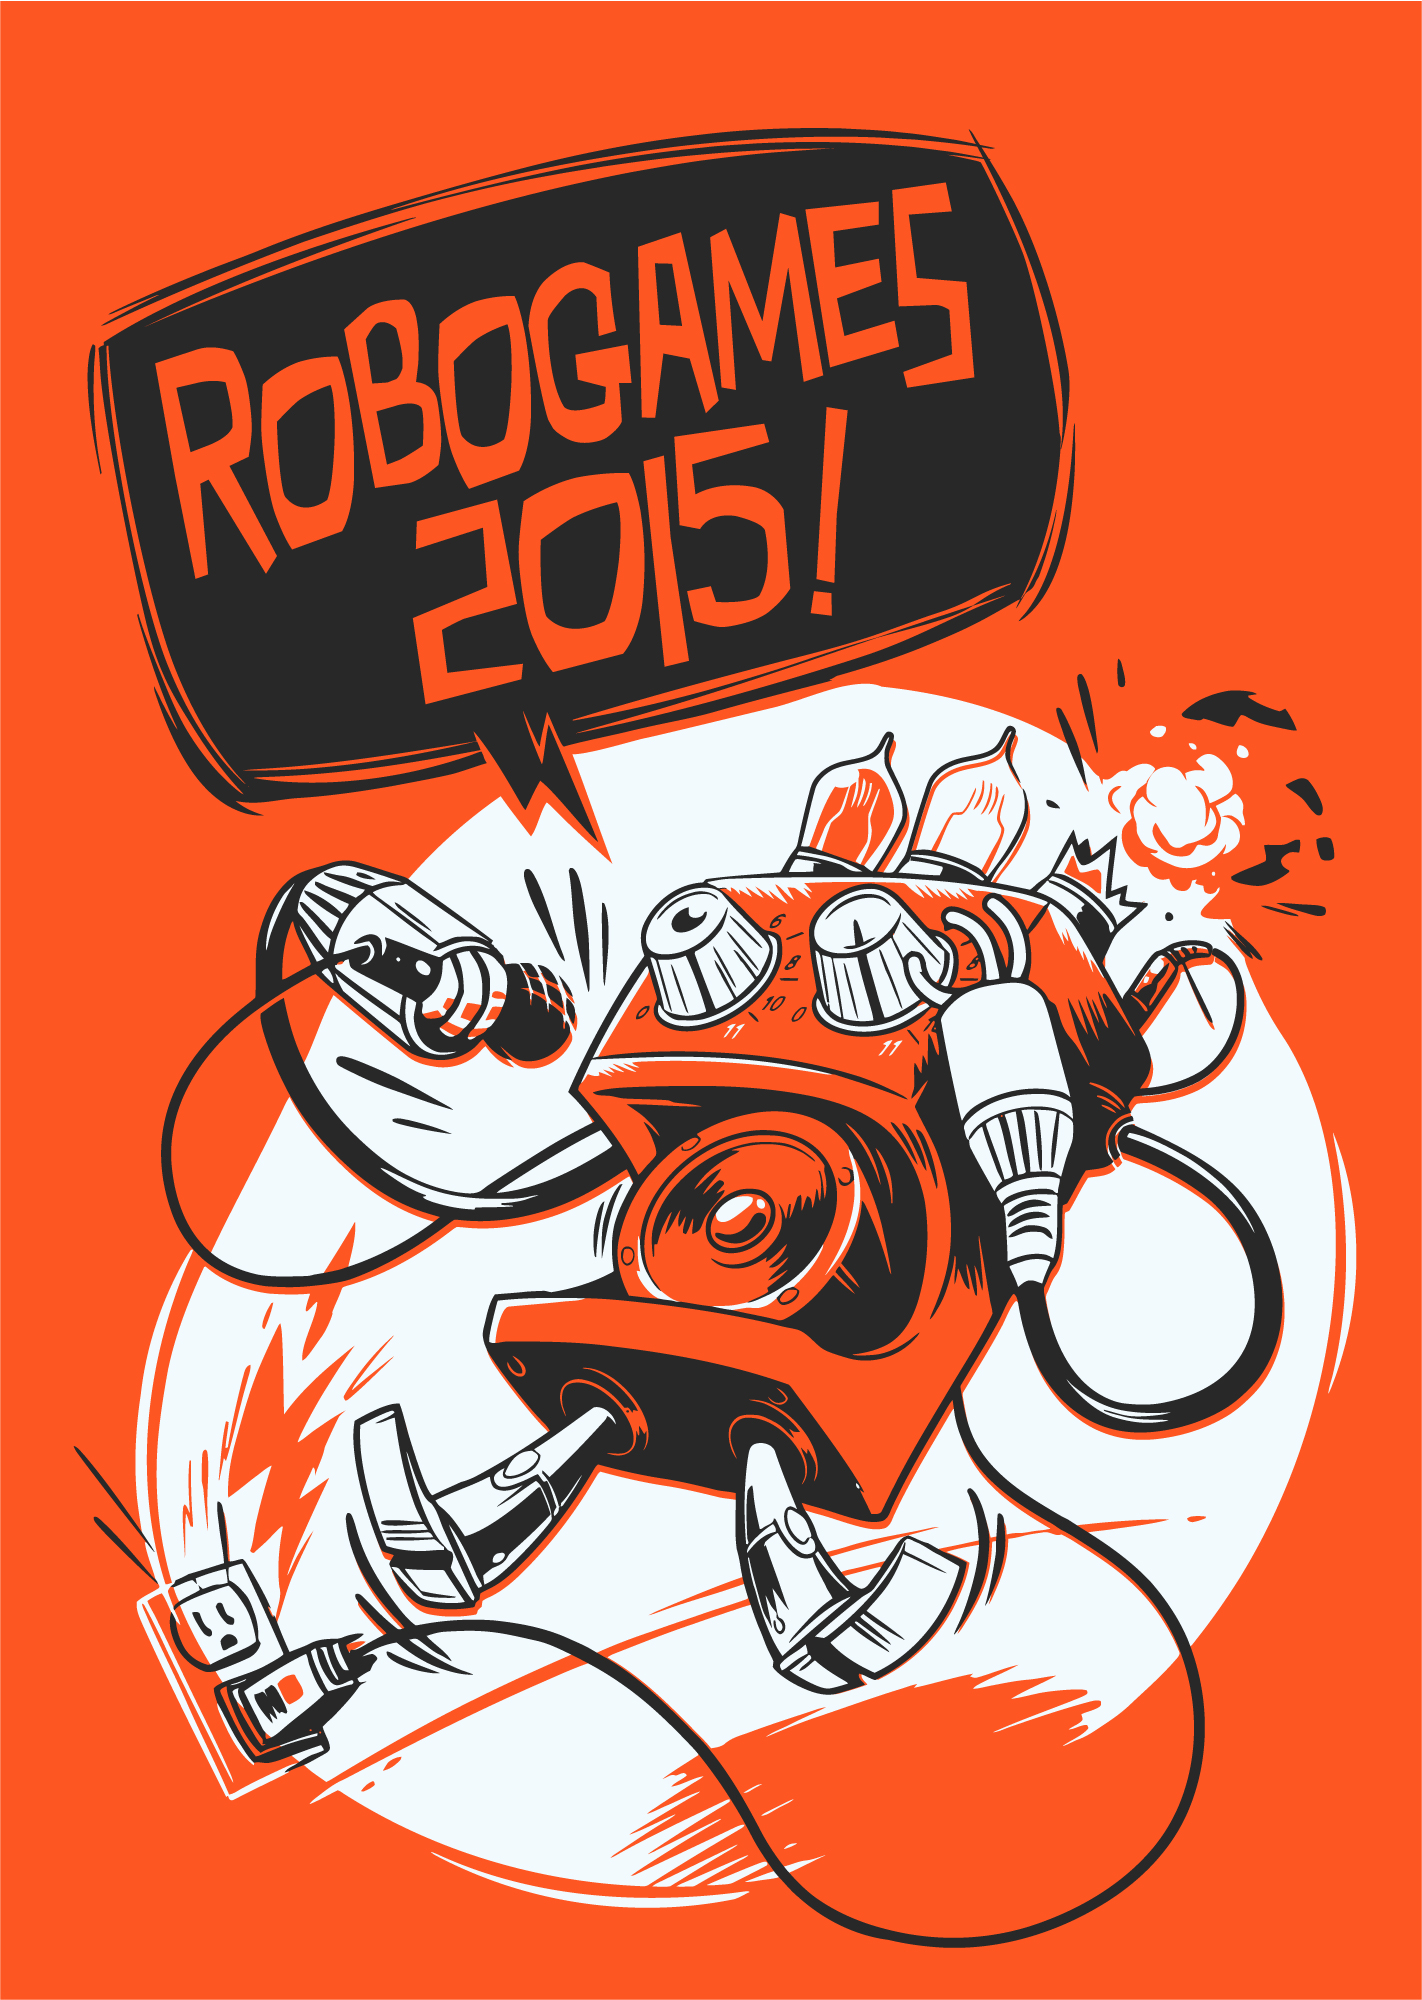 Internatinoal RoboGames logo